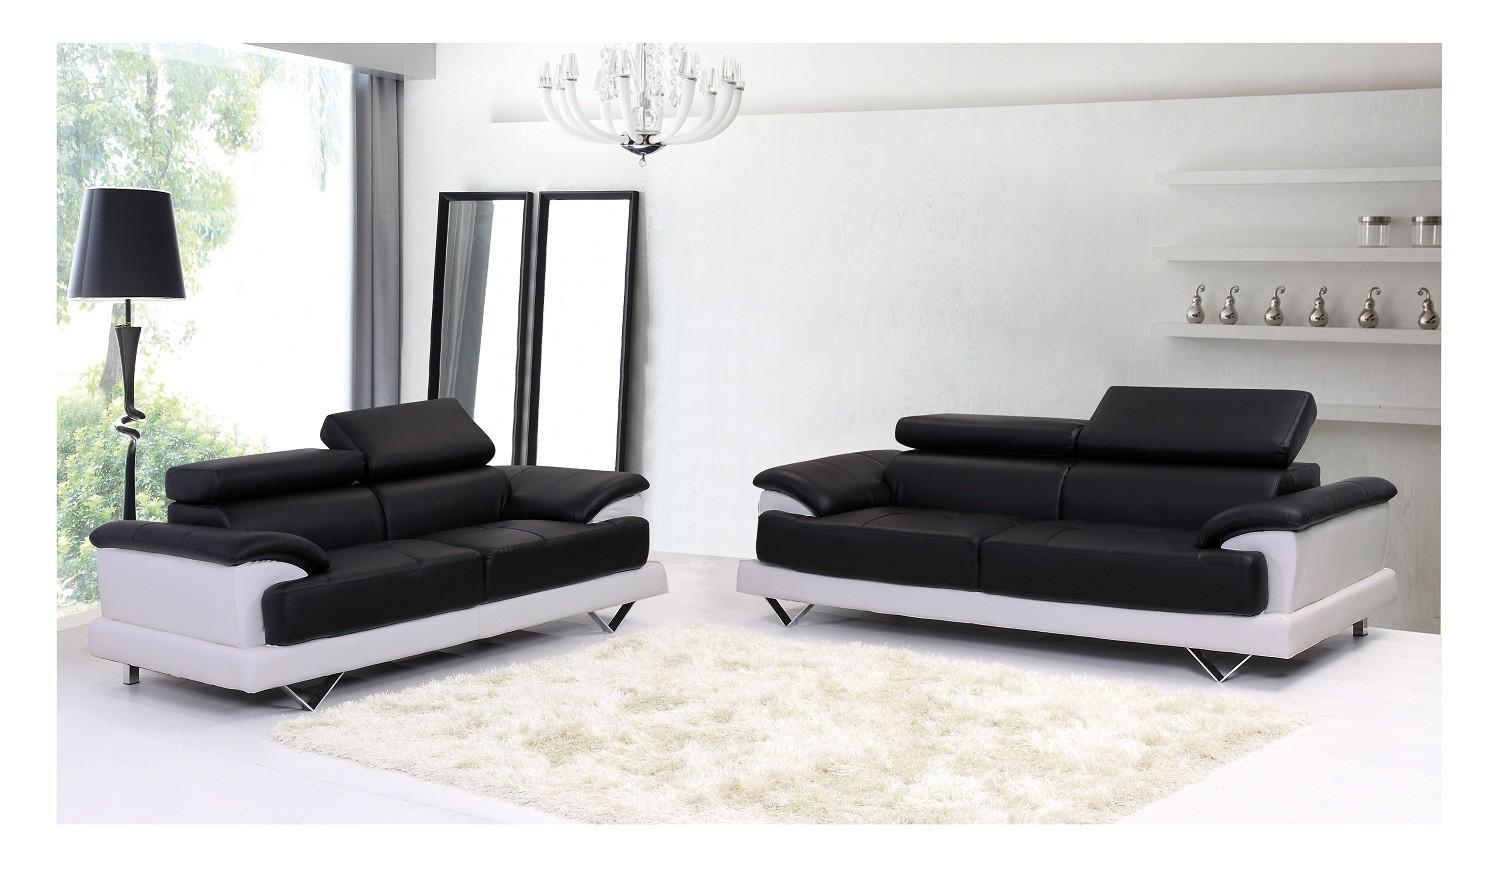 White Leather Sofas For Sale : White Leather Sofa For The For White Leather Sofas (View 14 of 20)